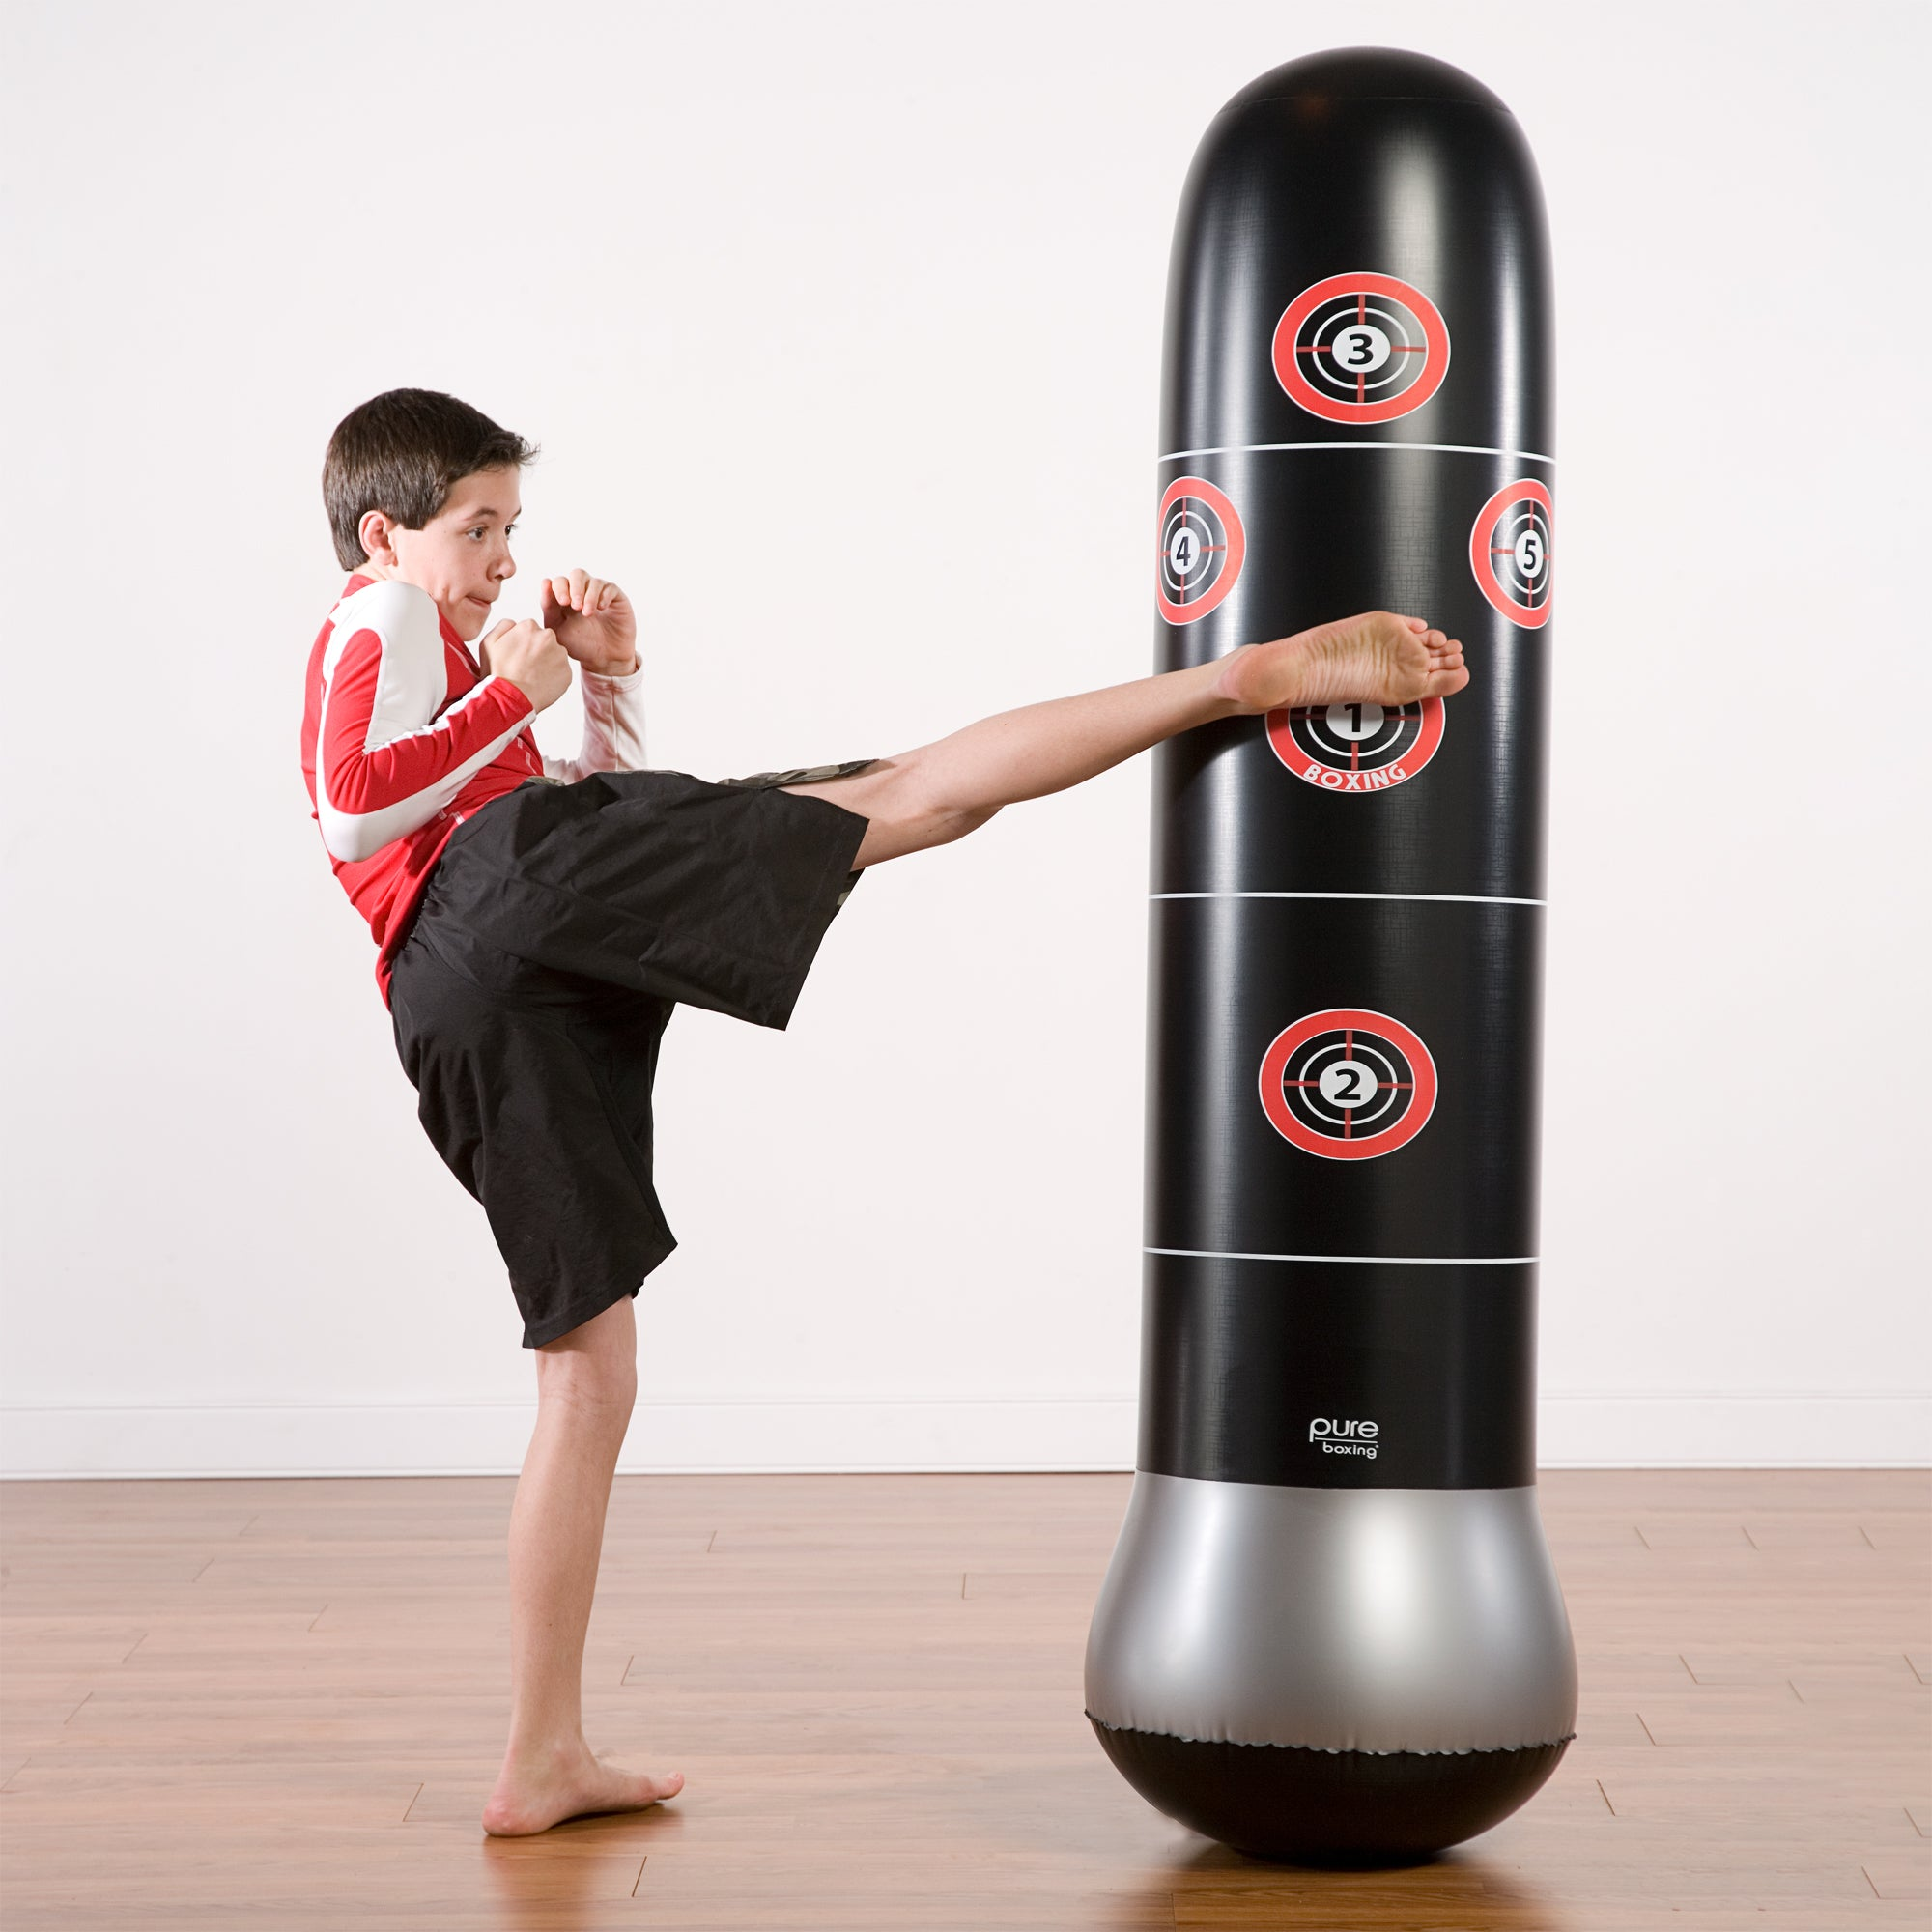 Pure Boxing MMA Target Bag Inflatable Punching Bag, 63-inch